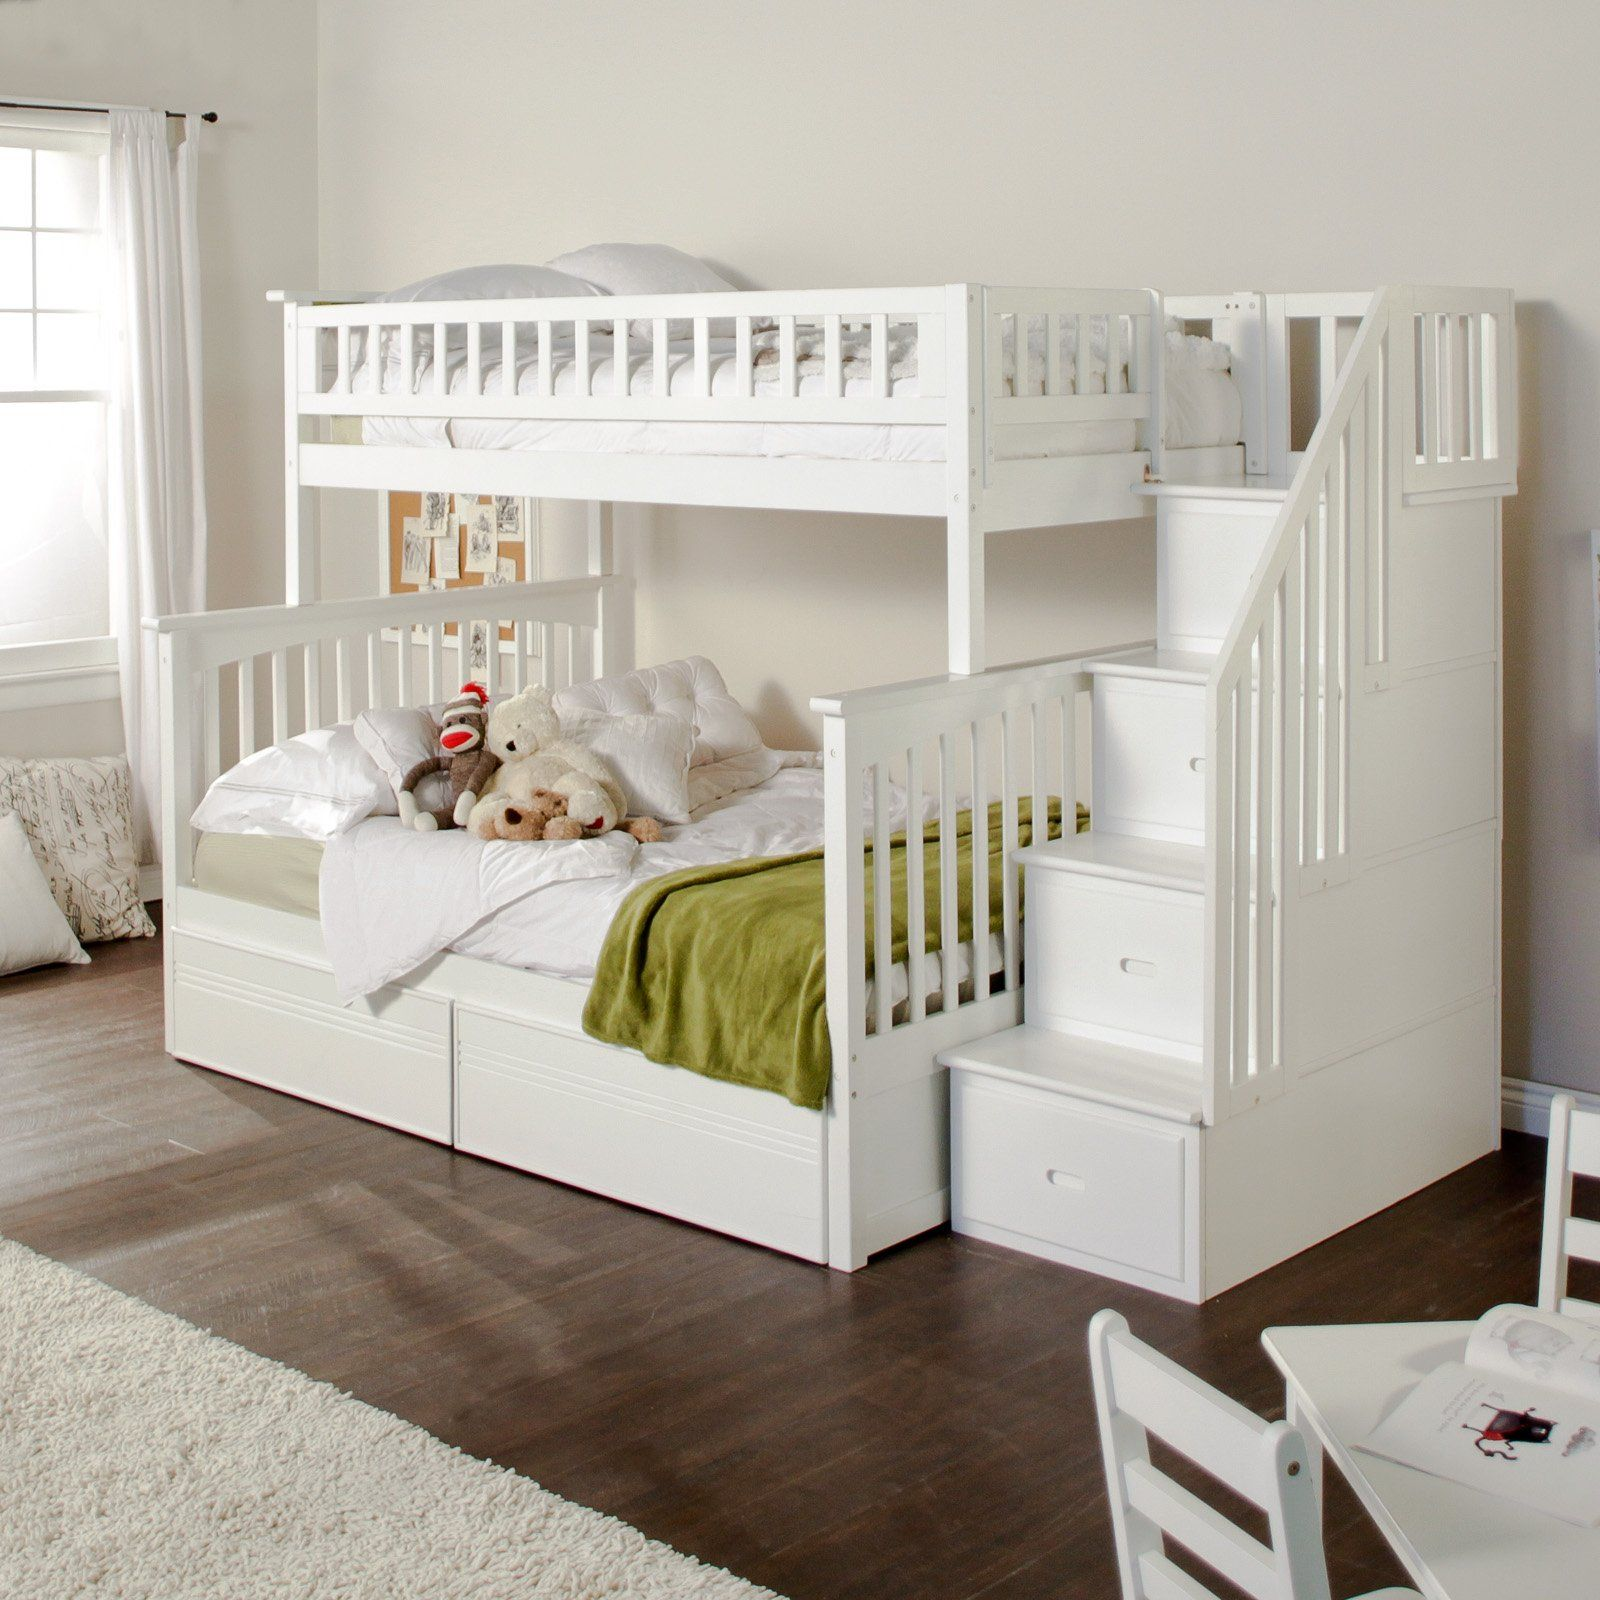 bedroom ideas room two small beds full girl with for rooms wardrobe kids furniture compact drawers bunk tones in size